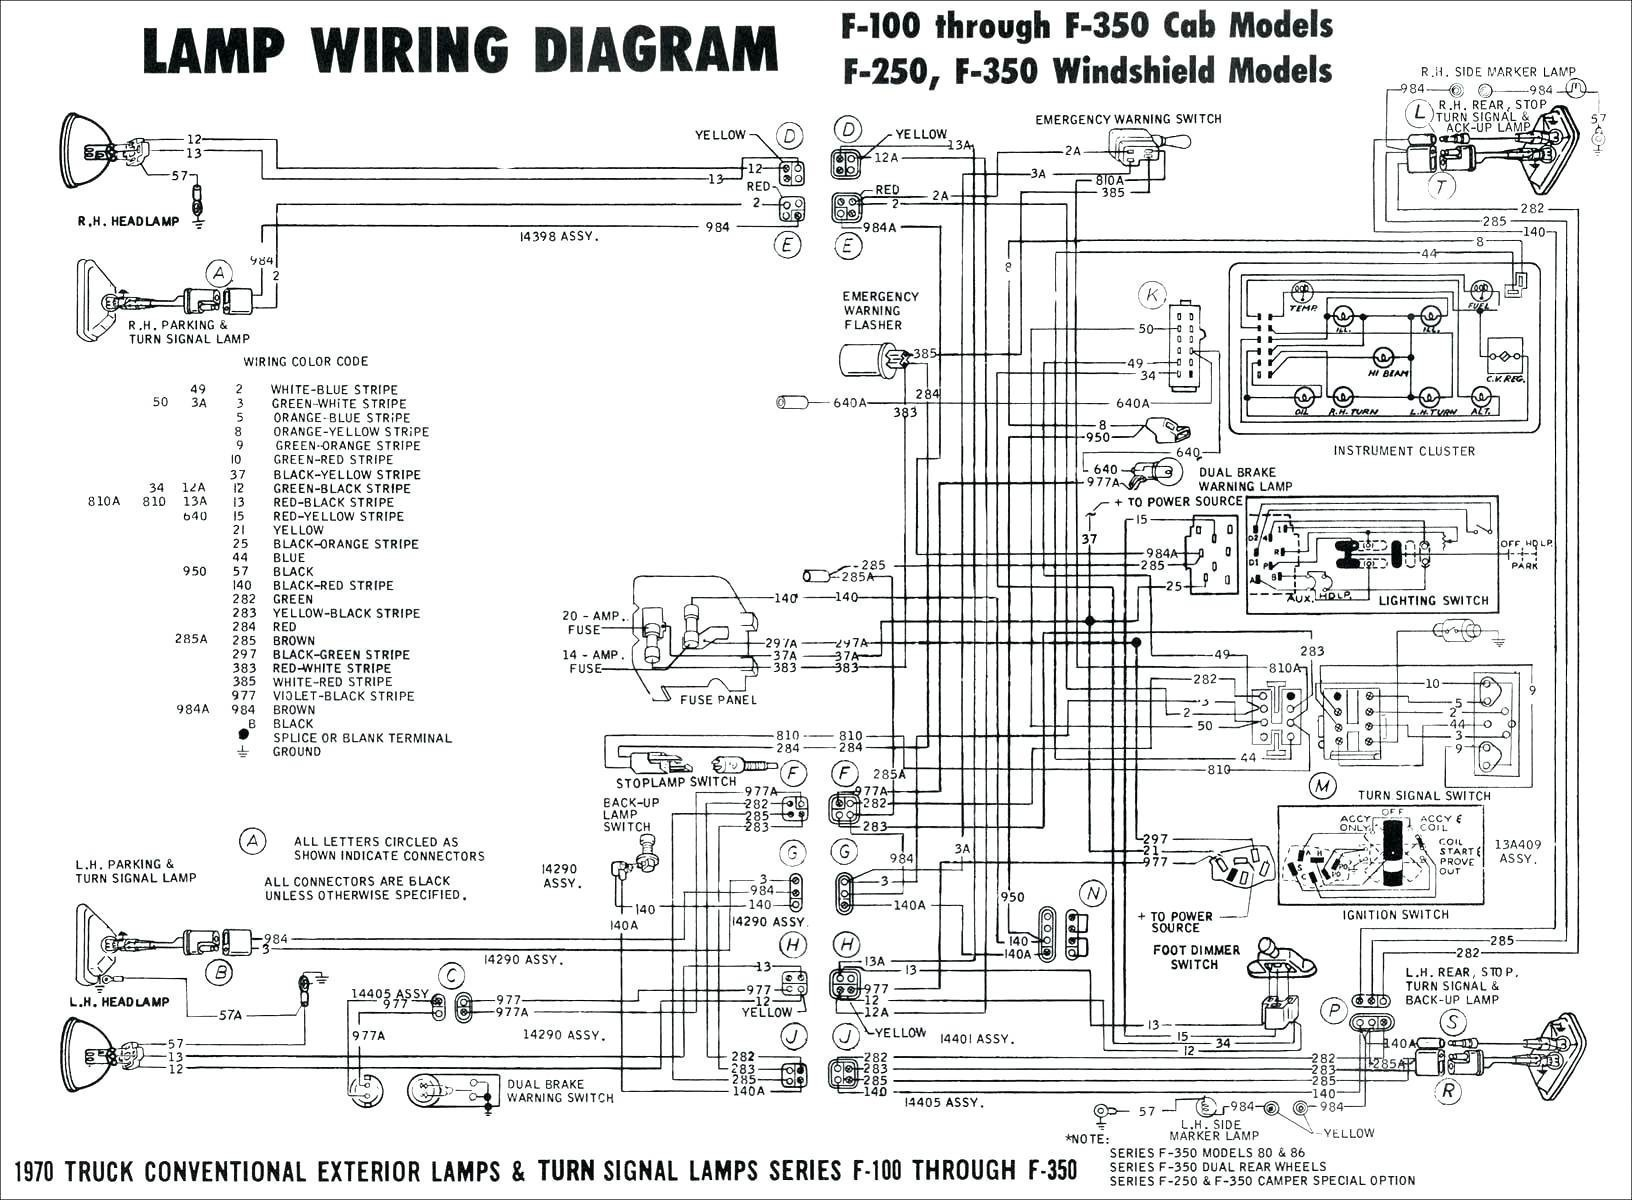 Coil Ignition System Diagram Wiring Diagram the Ignition System Refrence Basic Ignition System Of Coil Ignition System Diagram